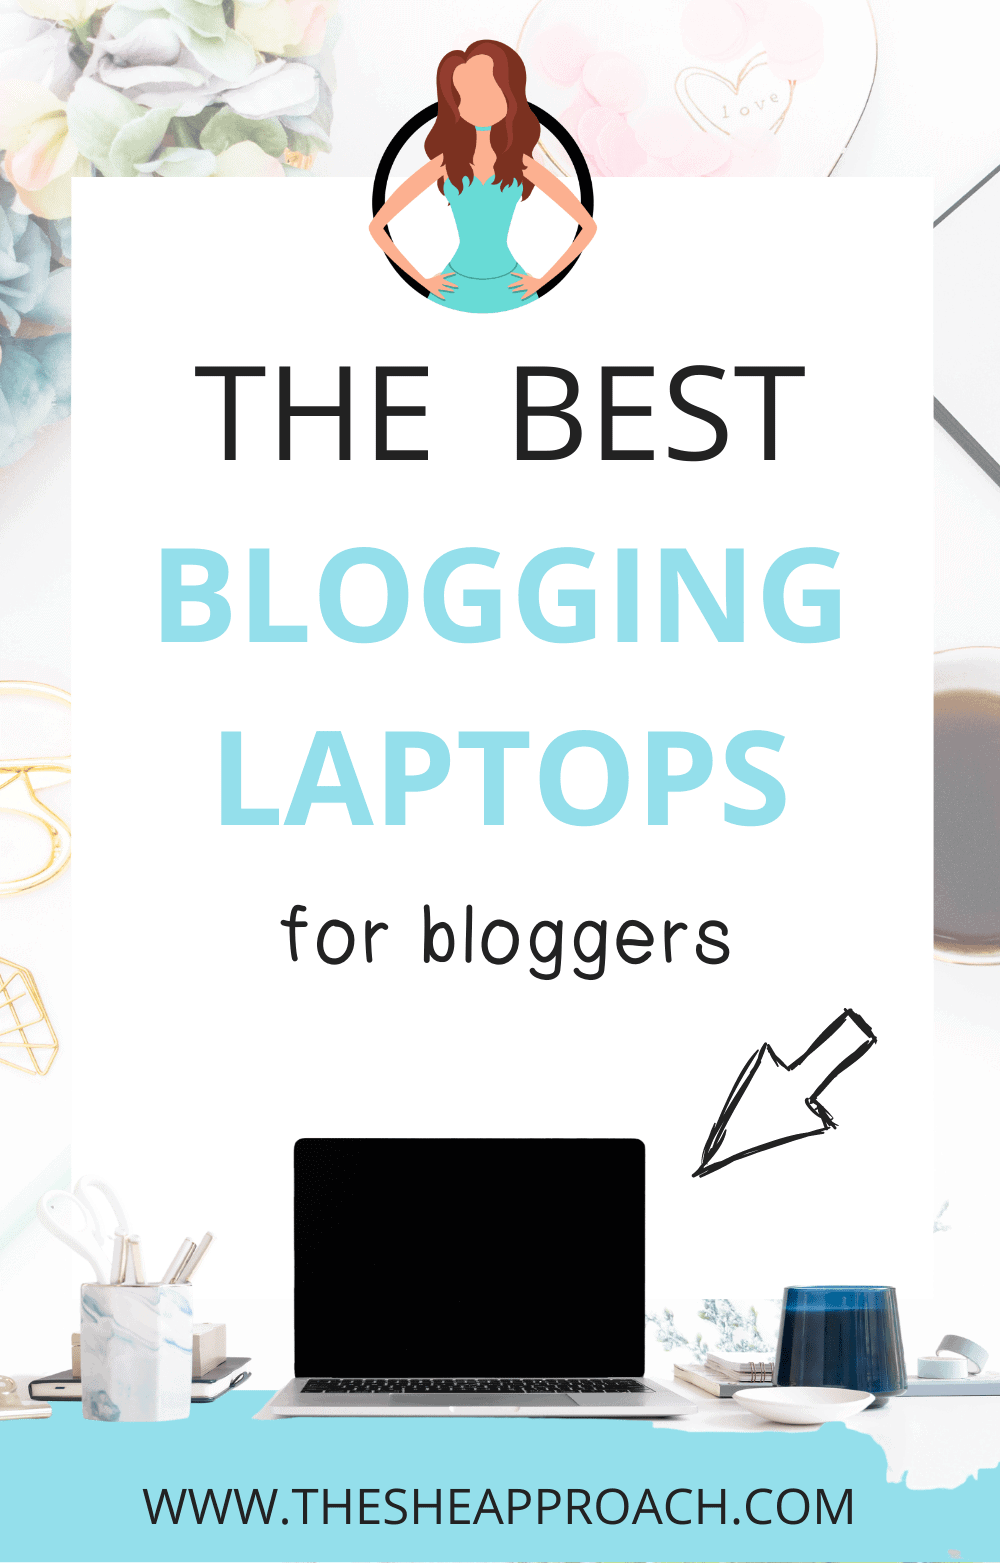 Best Laptops For Bloggers - Top 2021 Laptops That You Can Blog On